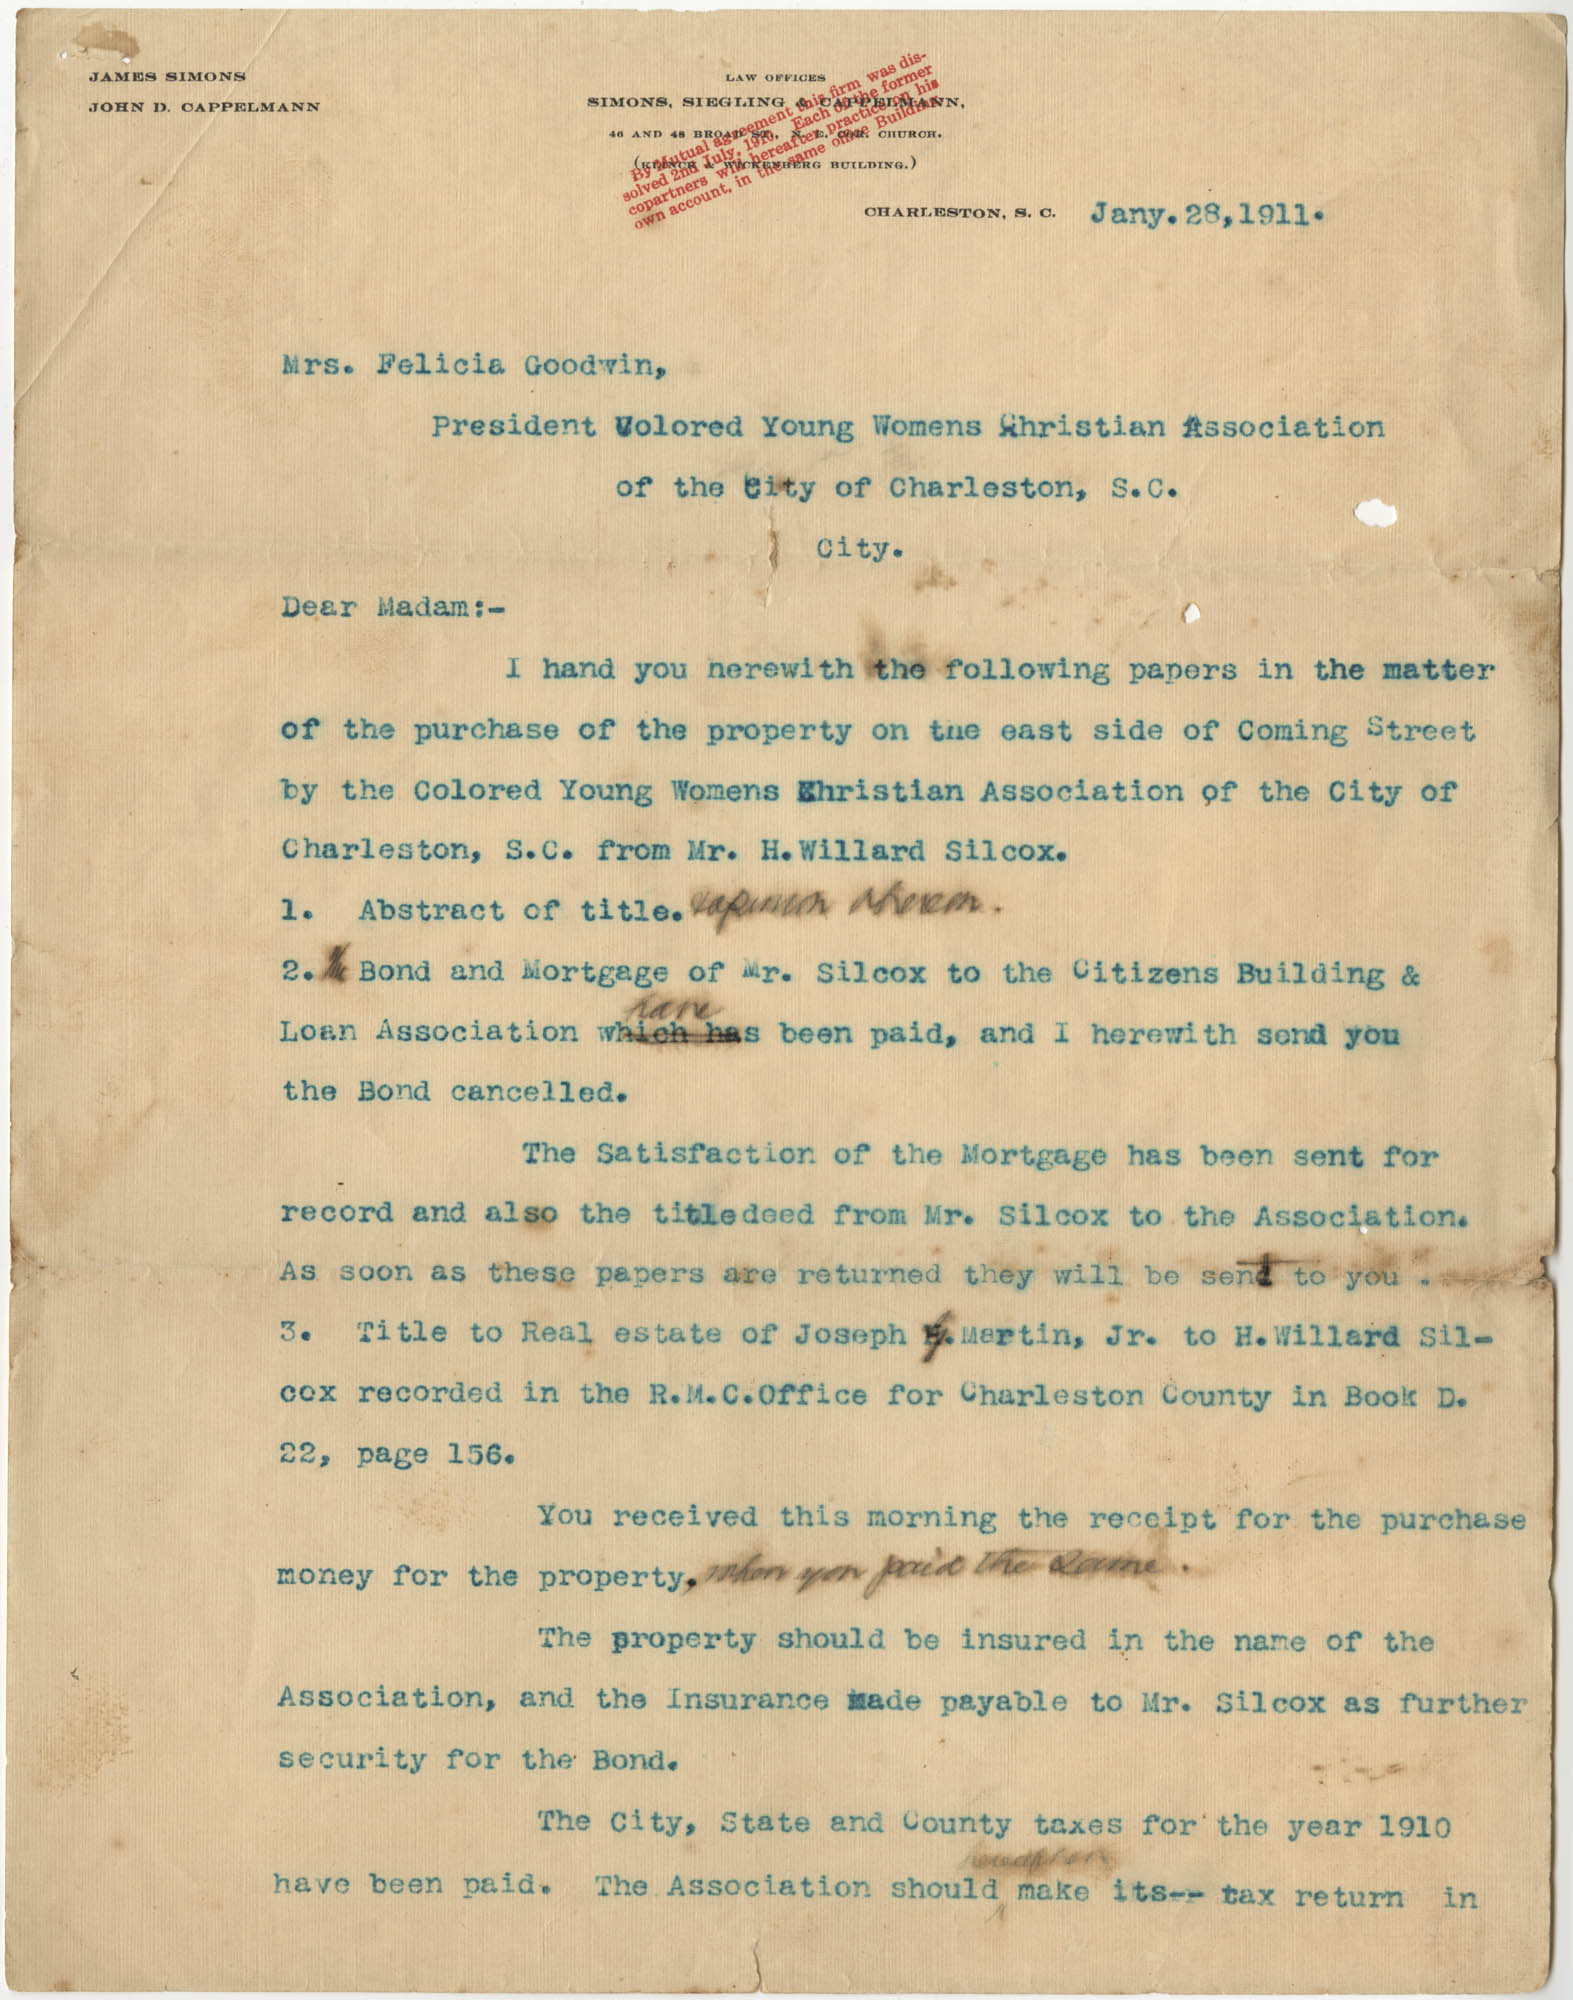 Letter from James Simons to Felicia Goodwin, January 28, 1911